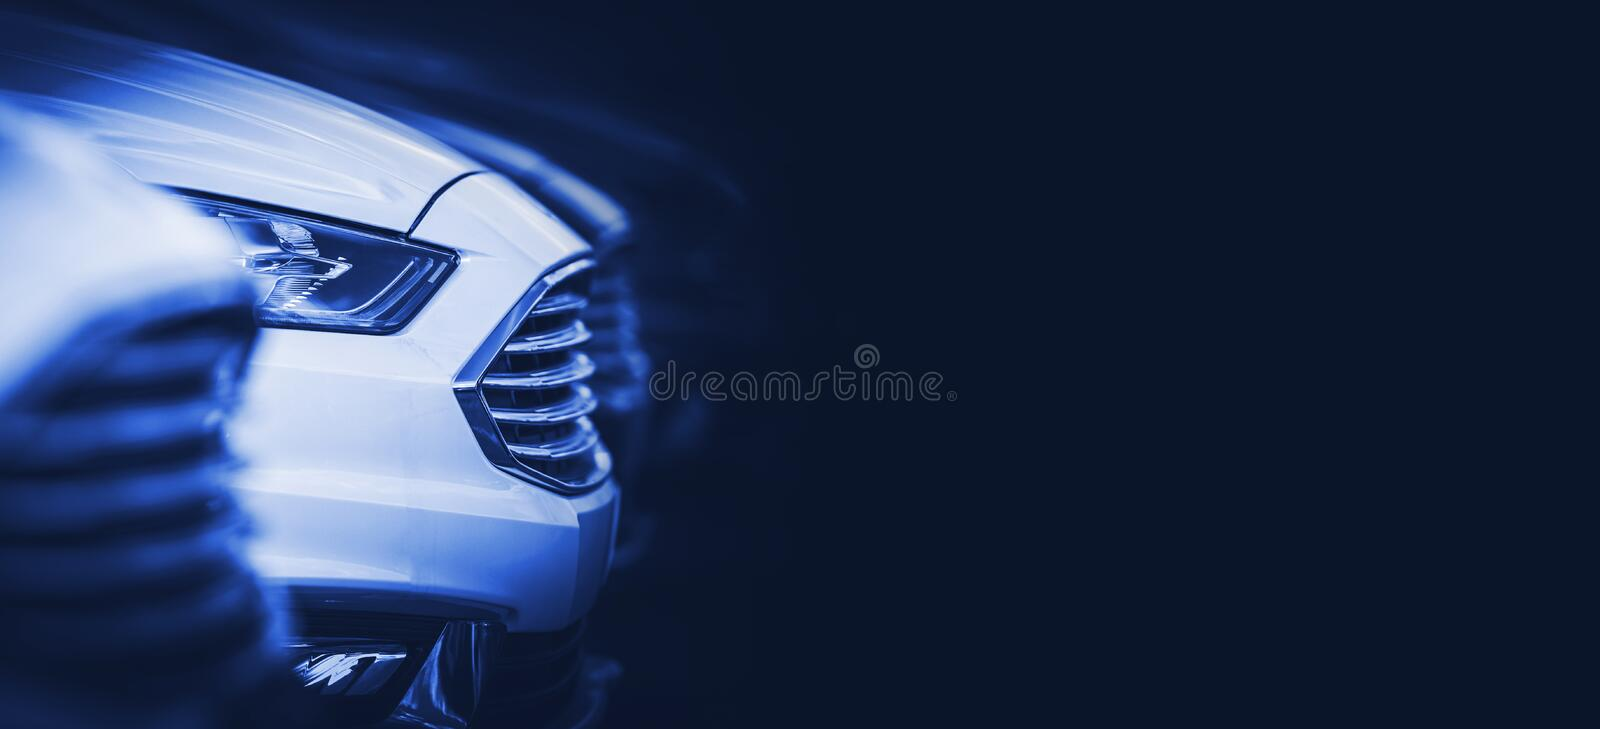 Automotive Blue Banner. Background with Modern Vehicles in Stock on the Dealership Parking Lot. Dark Blue Backdrop with Copy Space stock photo